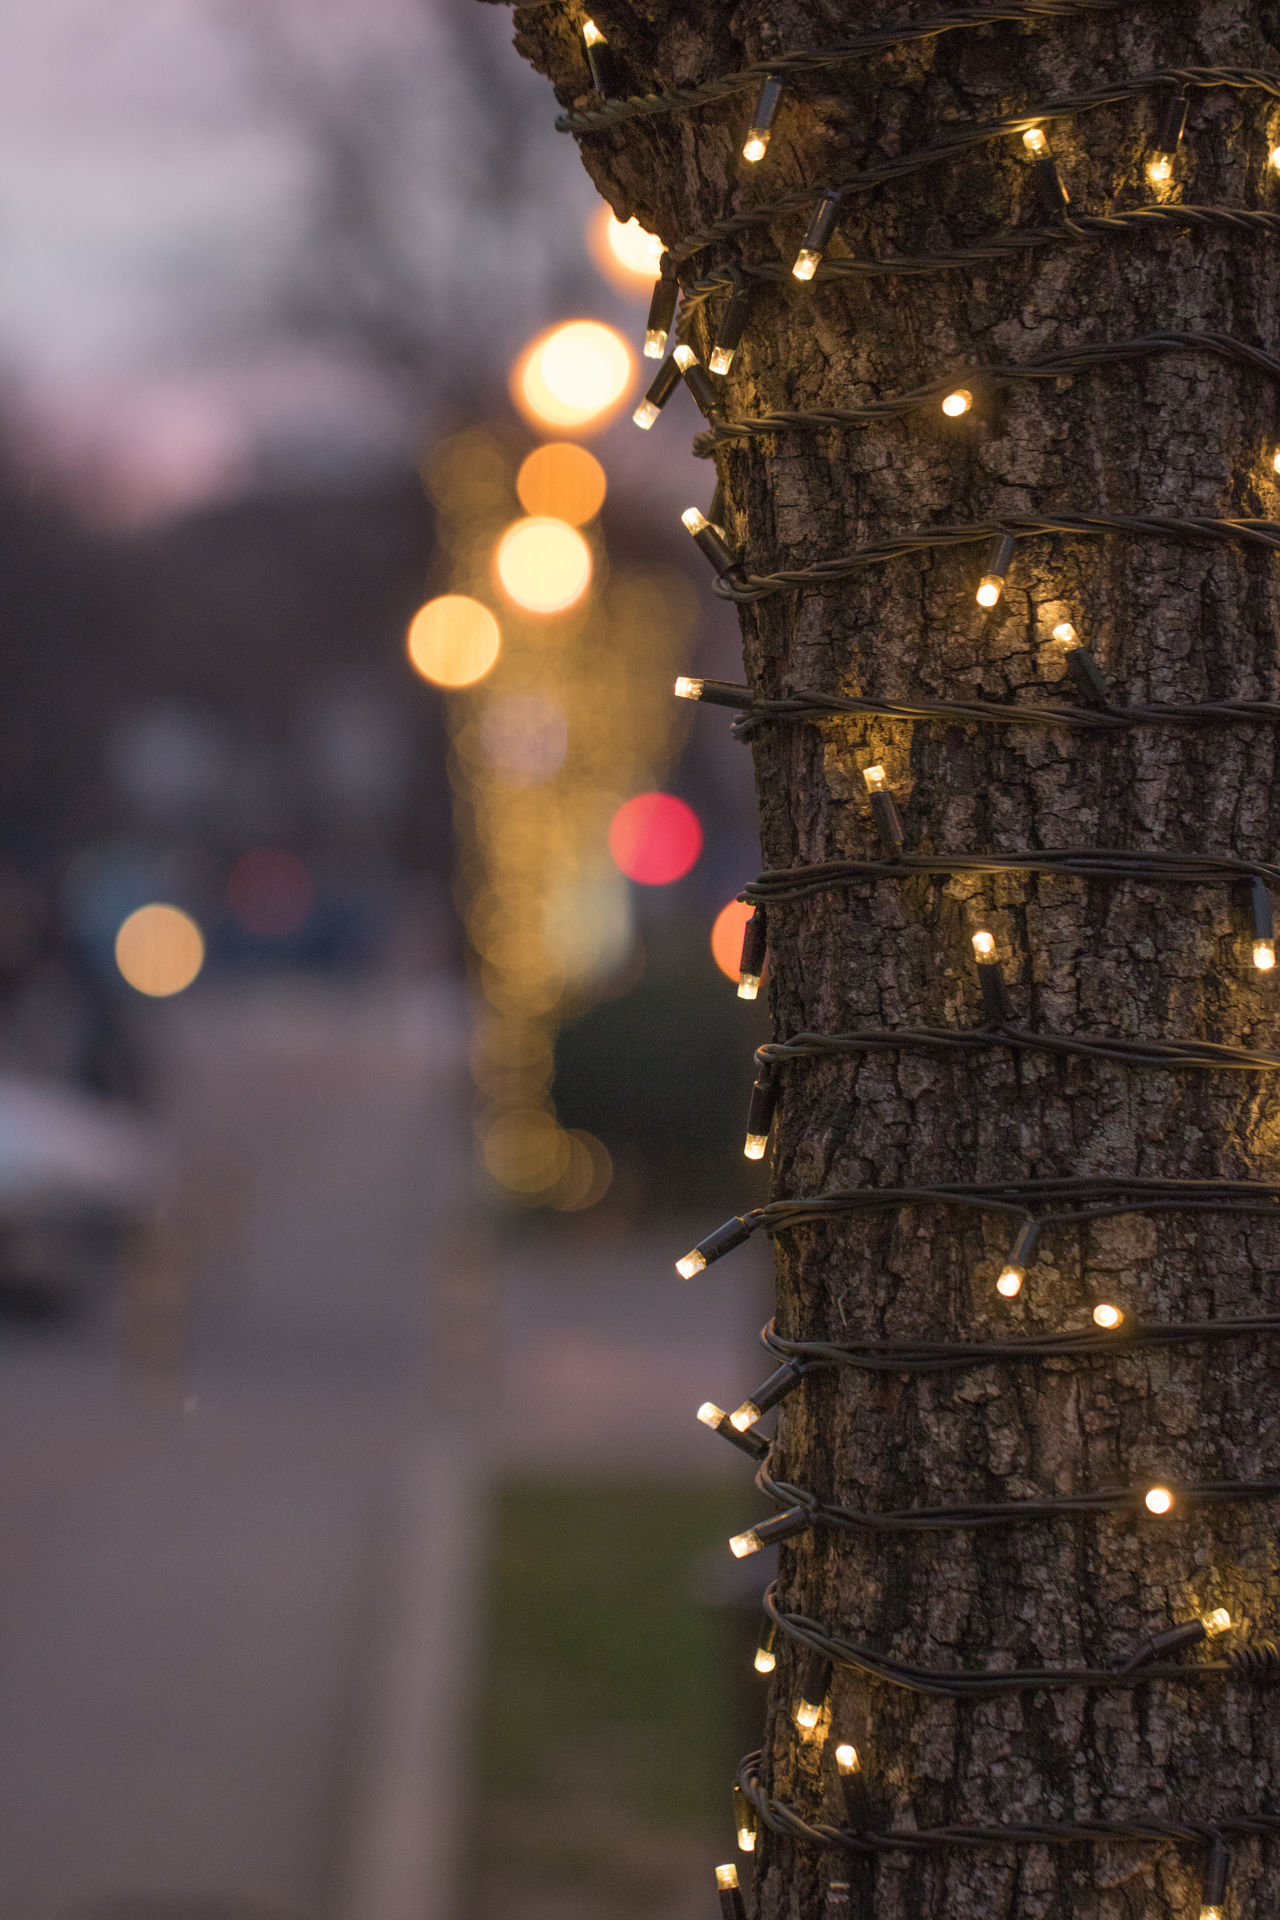 Celebration Christmas Christmas Decoration Christmas Lights Christmas Tree Illuminated Light Light And Shadow Light In The Darkness Lights Night No People Outdoors Tree Tree Tree_collection  Trees